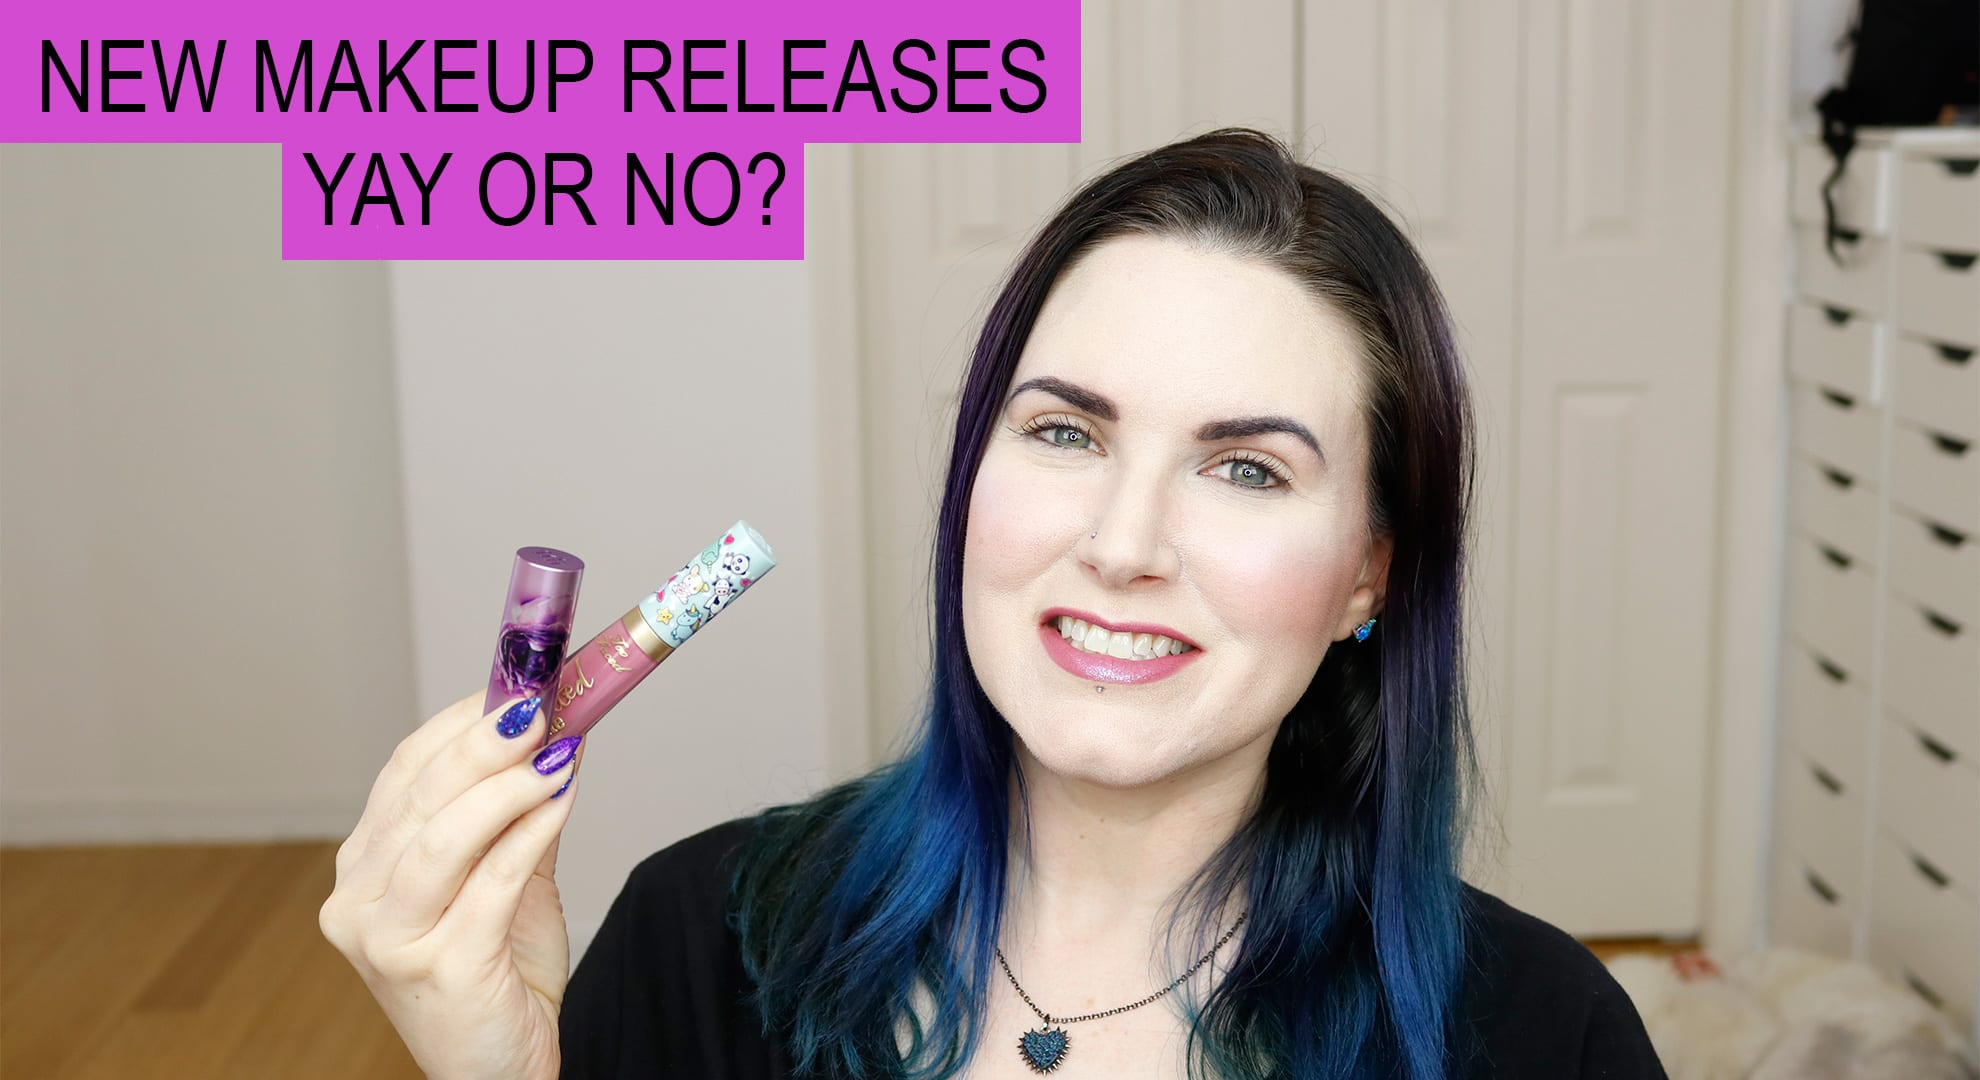 New makeup releases 2018